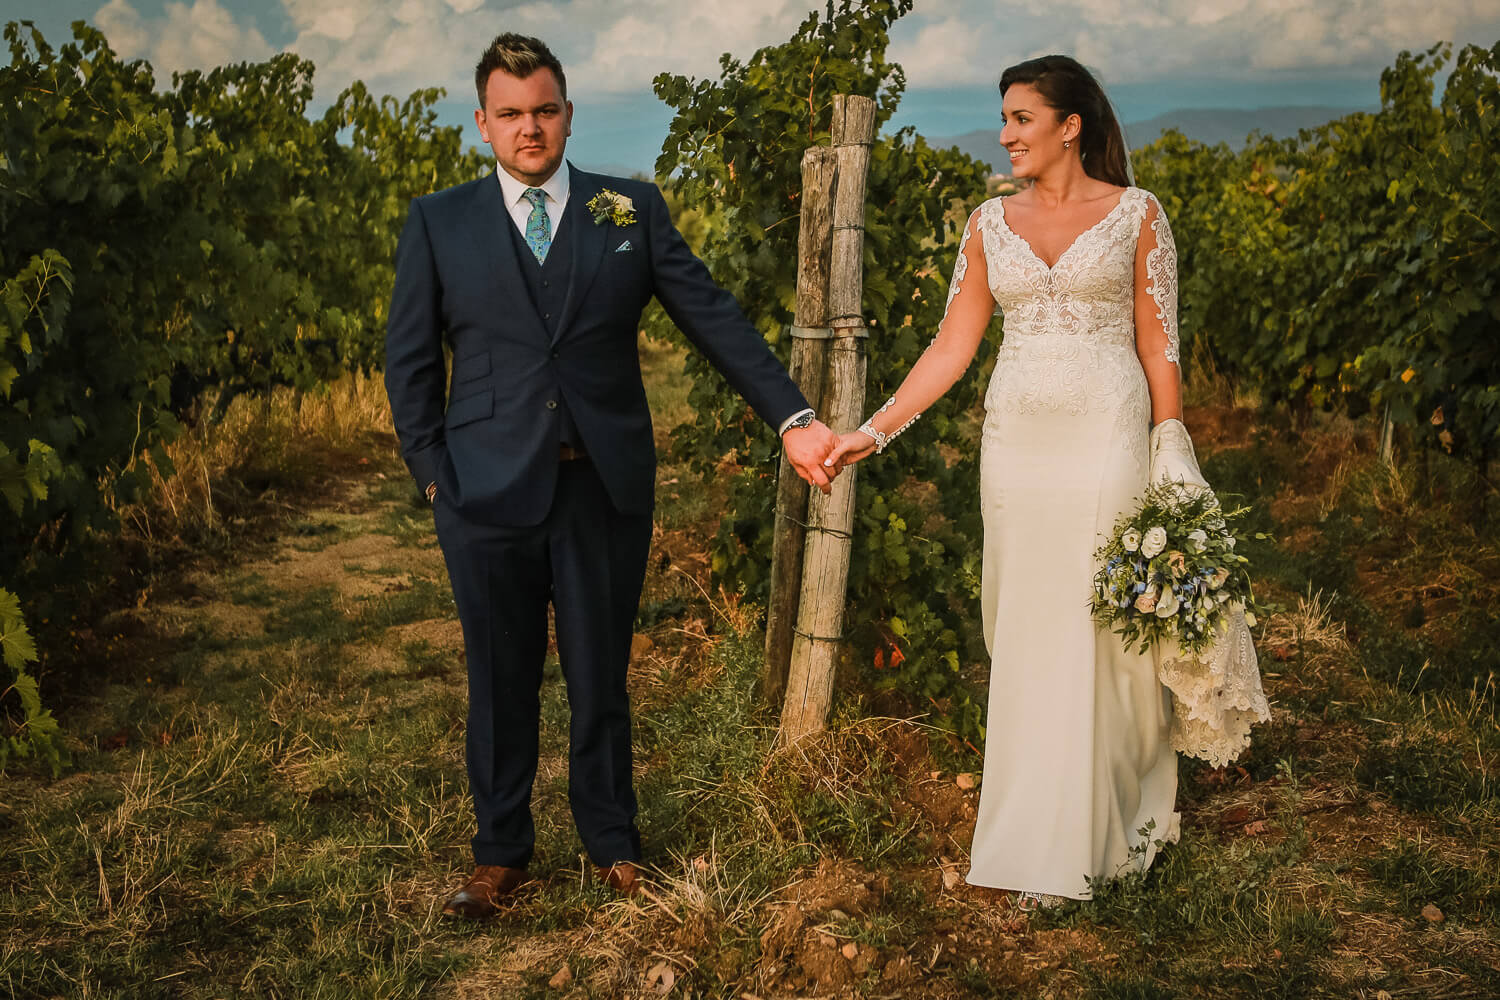 Bride and groom holding hands in vine yards. Tuscany wedding photographer UK